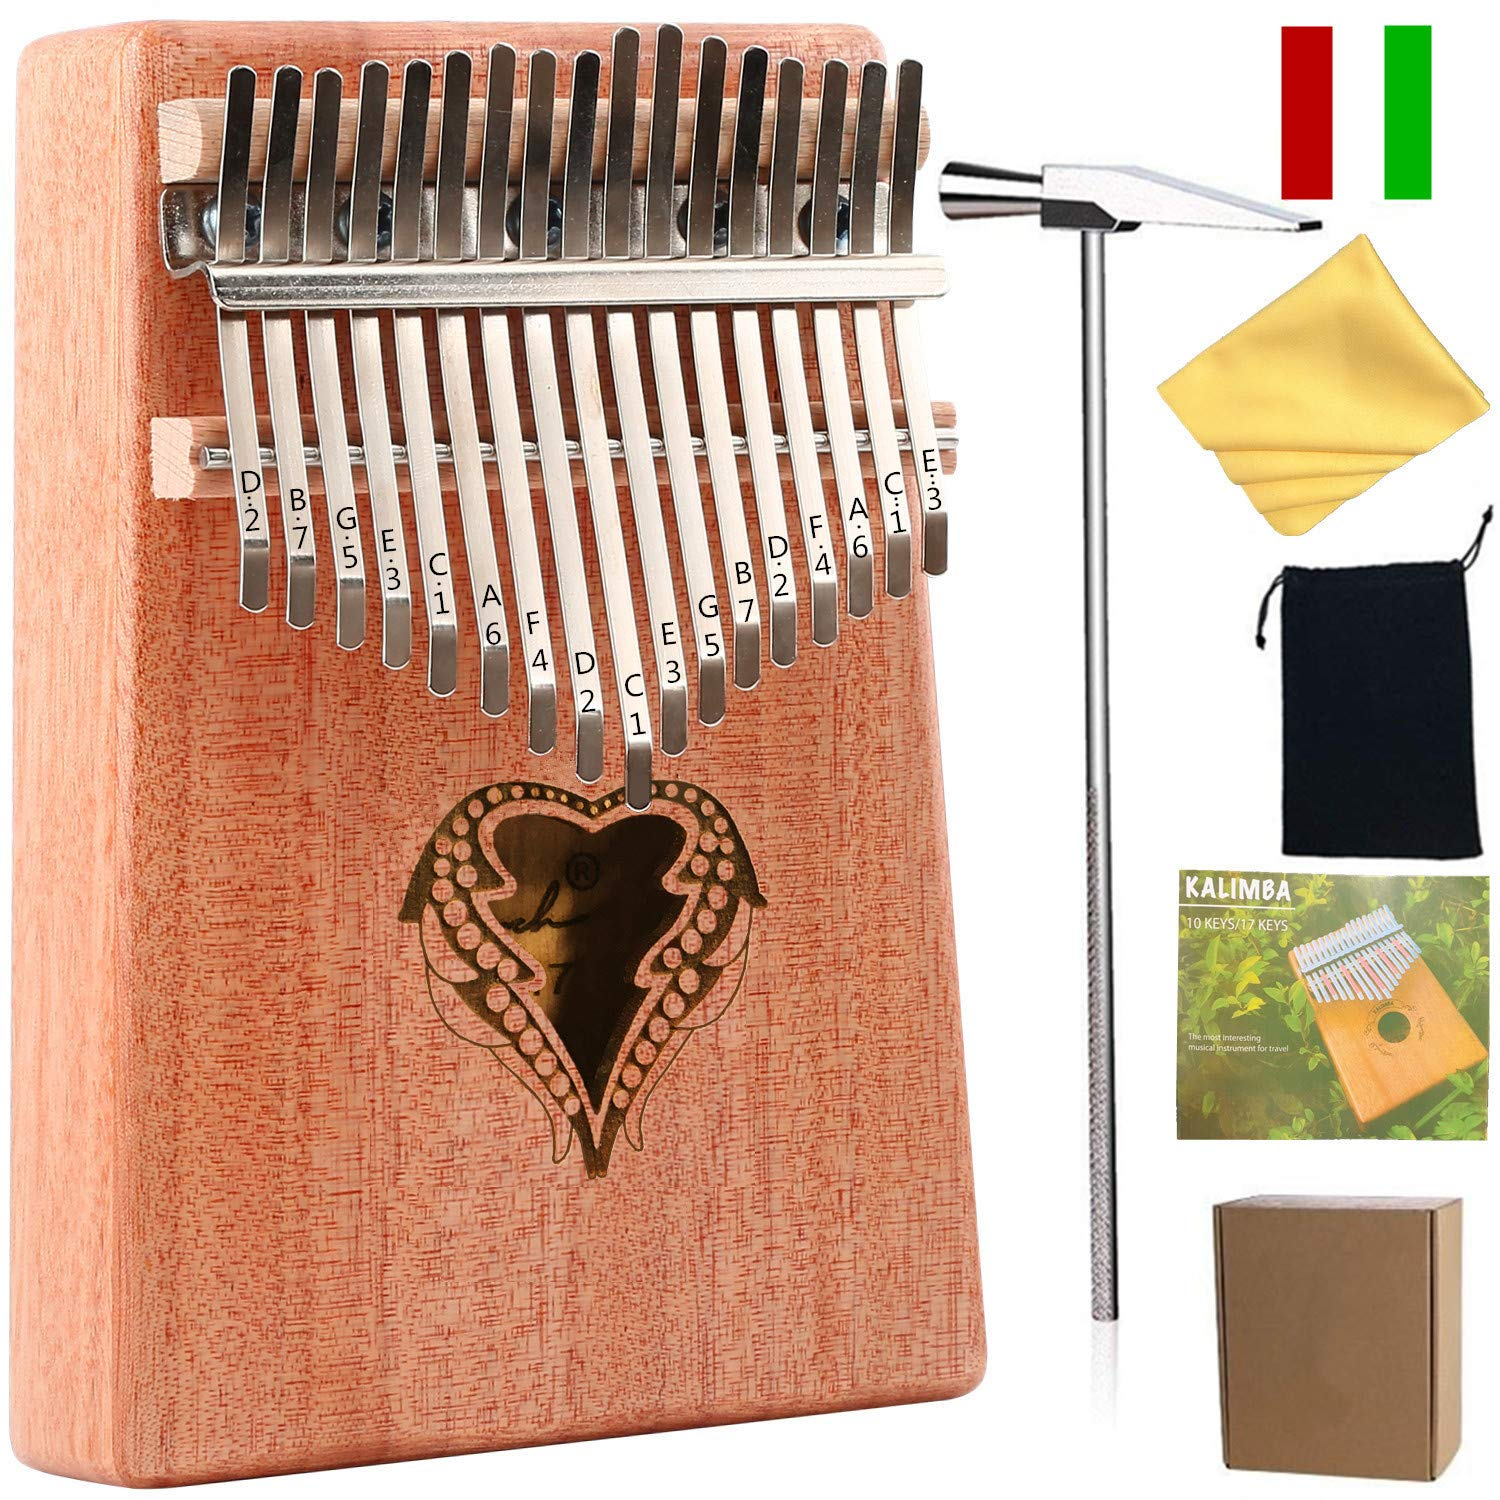 Thumb Piano Ranch Kalimba 17 keys Finger Mbira with Online 6 Free Lessons Solid Wood Mahogany Christmas Gifts with Bag/Carved Notation/Tune Hammer - Love Heart by Ranch